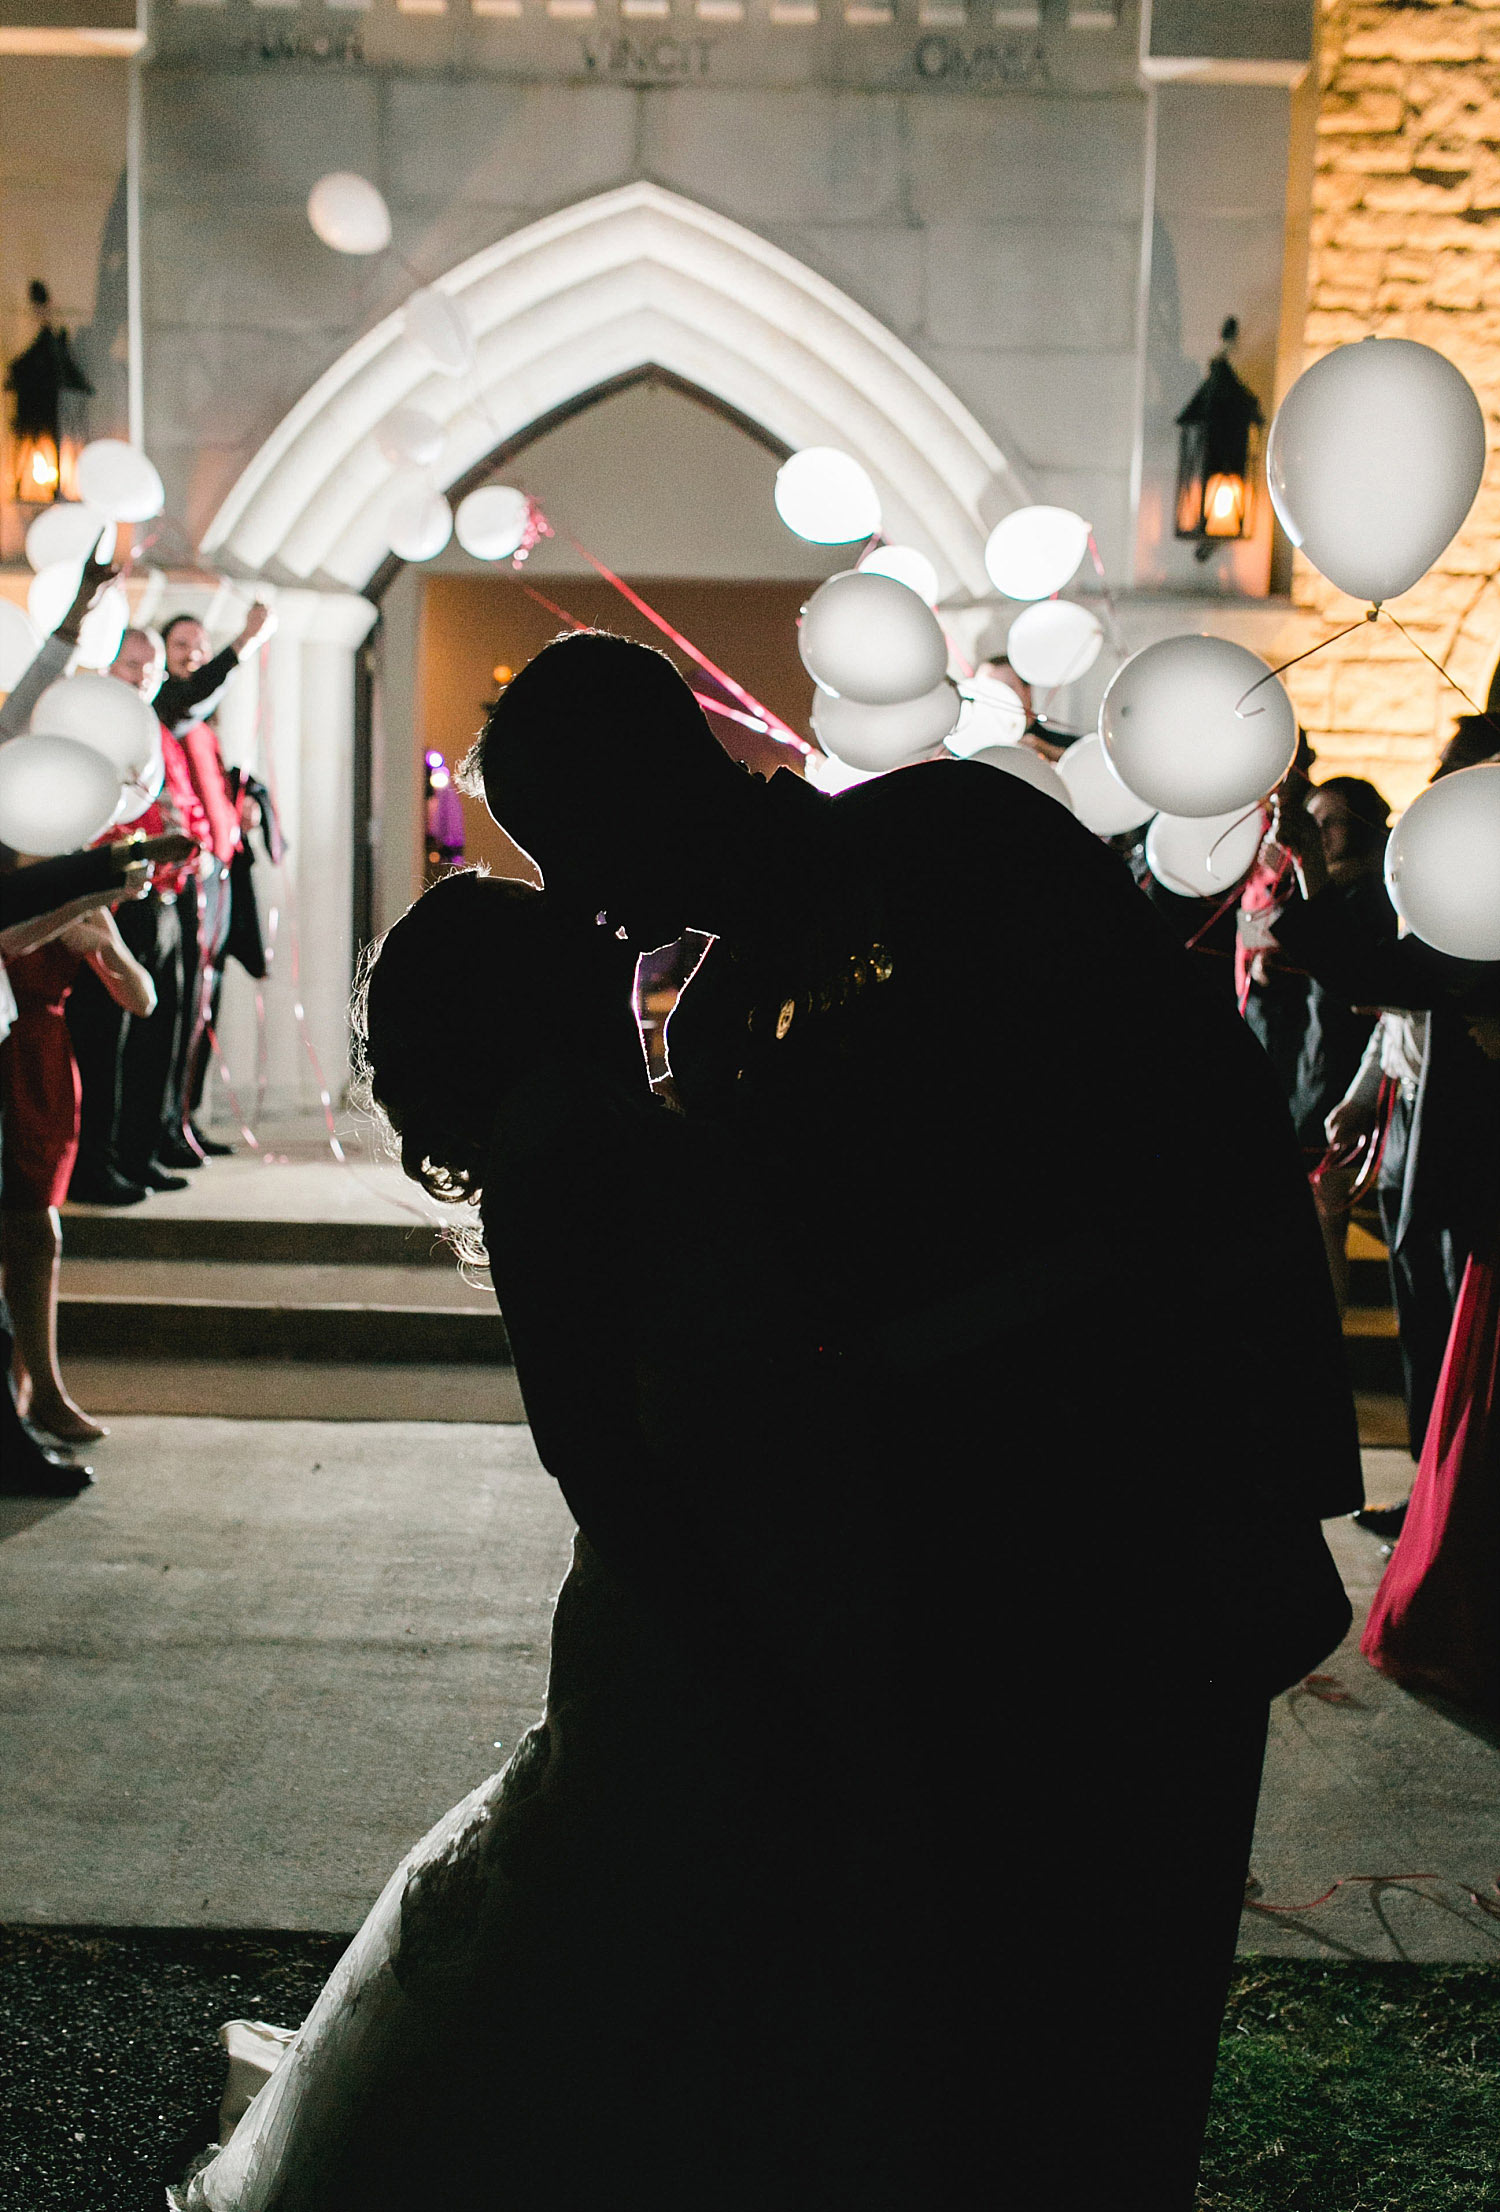 Castle at Rockwall wedding bride and groom kissing with LED balloons in the background